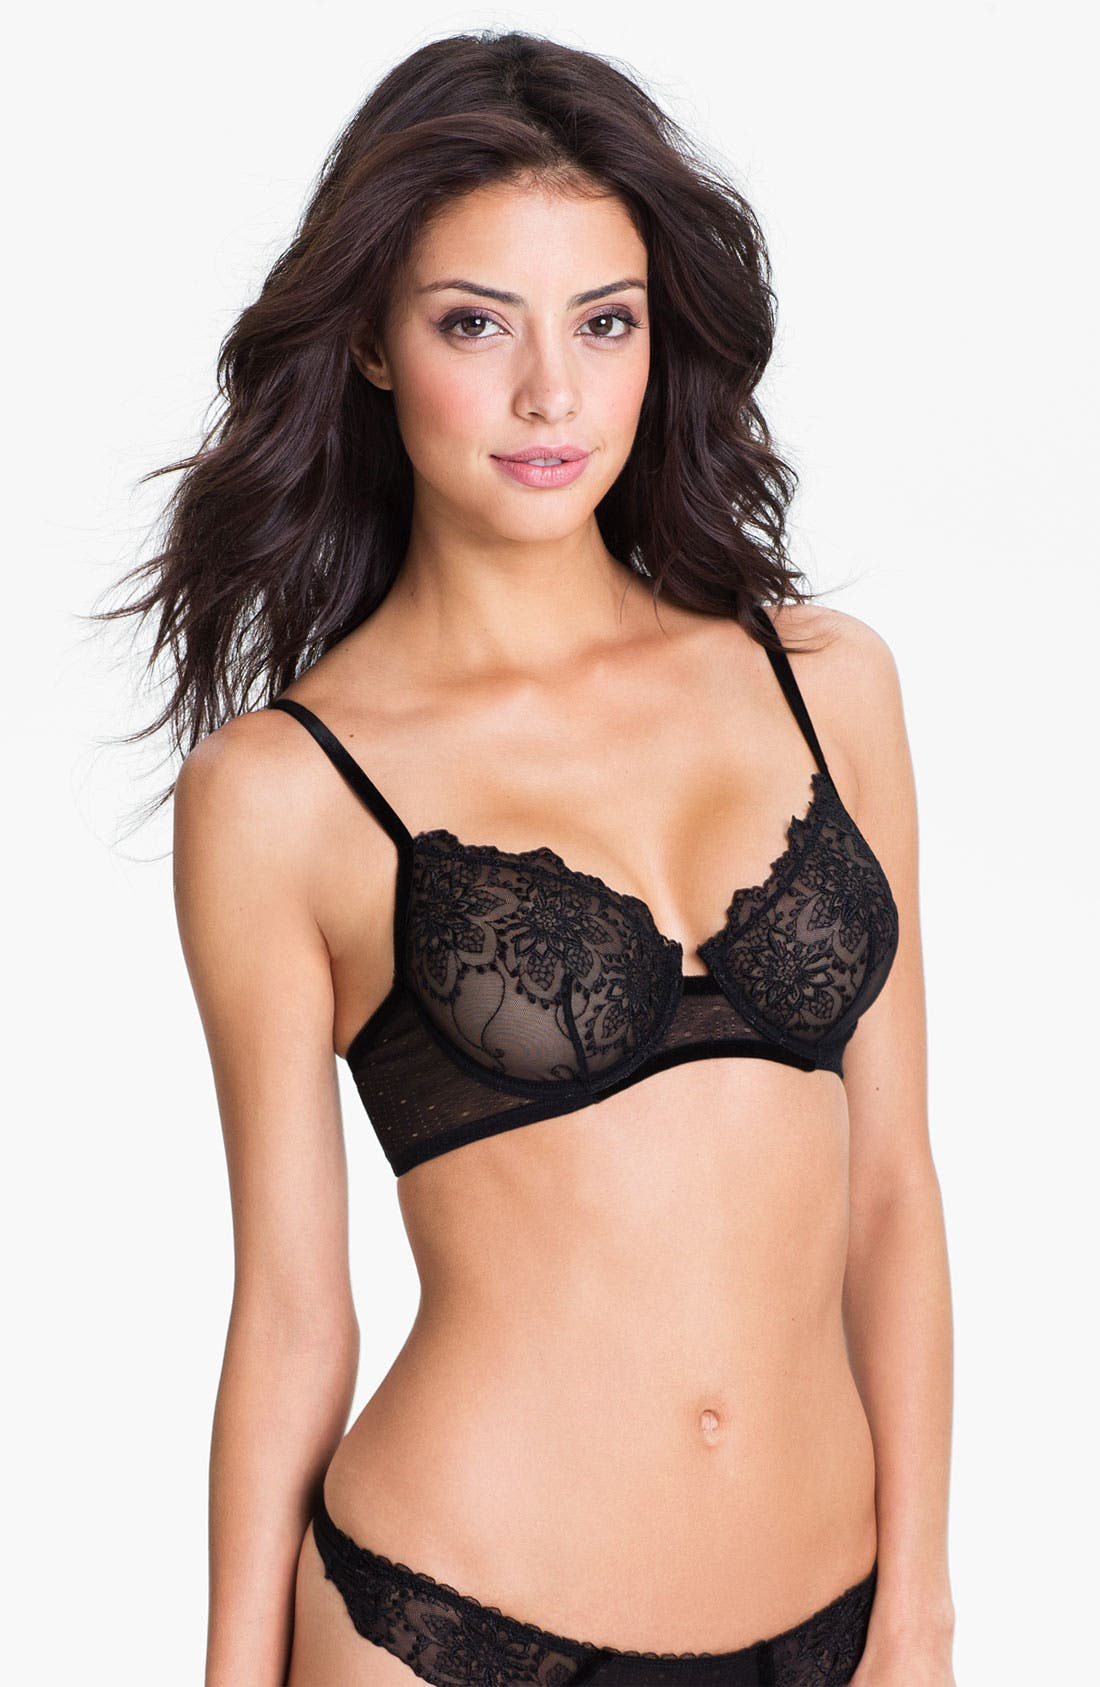 Alternate Image 1 Selected - Miss Studio by La Perla 'Audrey' Underwire Bra